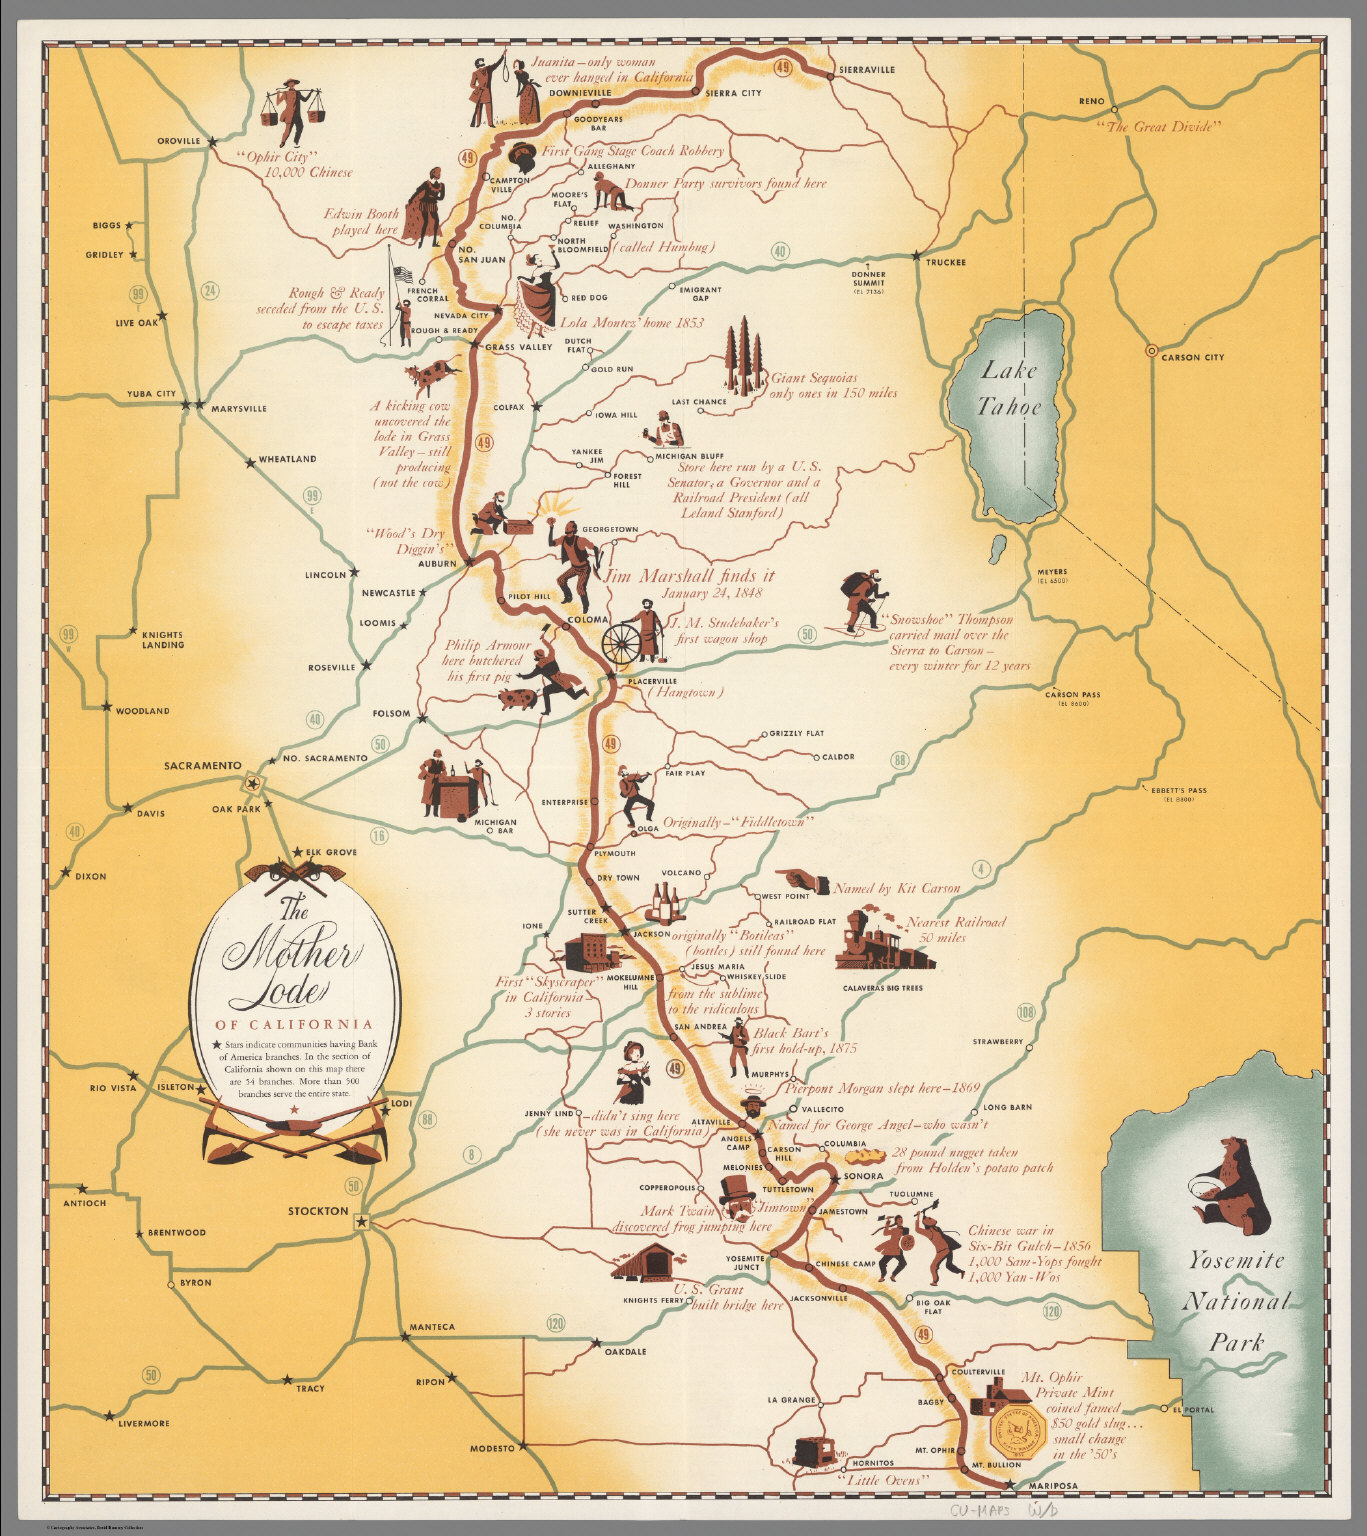 The Mother Lode Of California. - David Rumsey Historical Map Collection - California Mother Lode Map